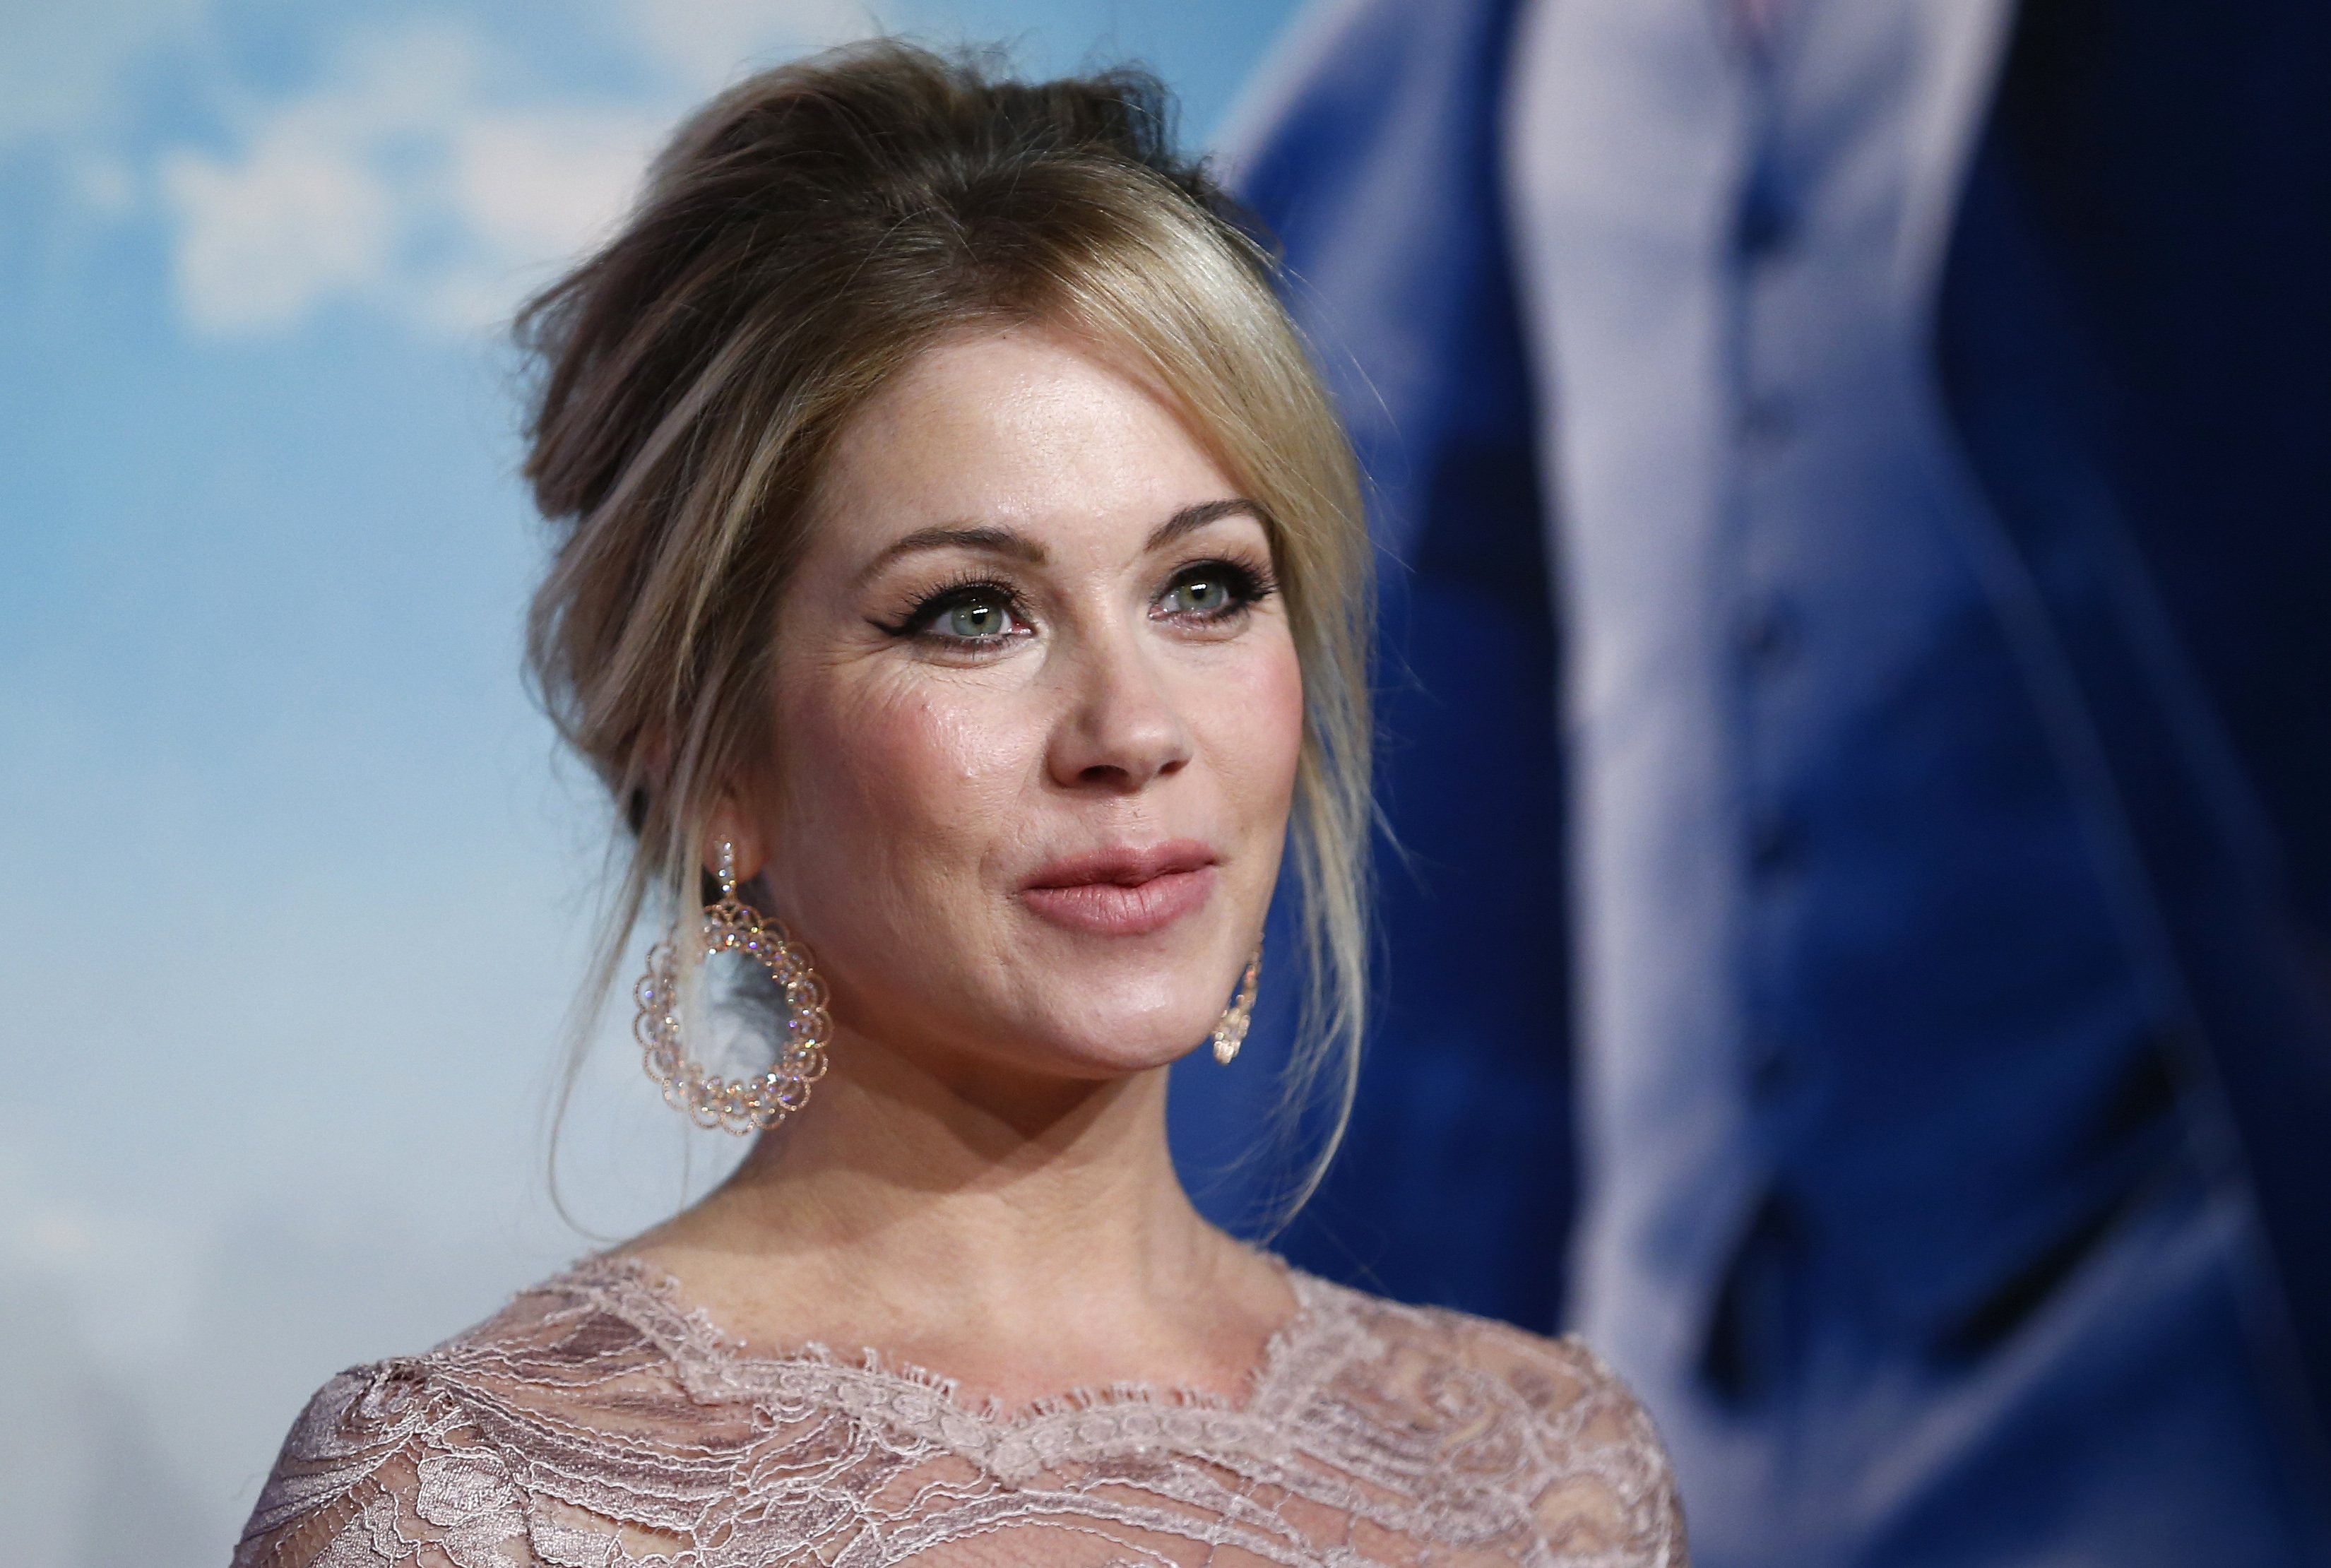 Like Anchorman fans, Christina Applegate doesn't want to wait another nine years for a third movie